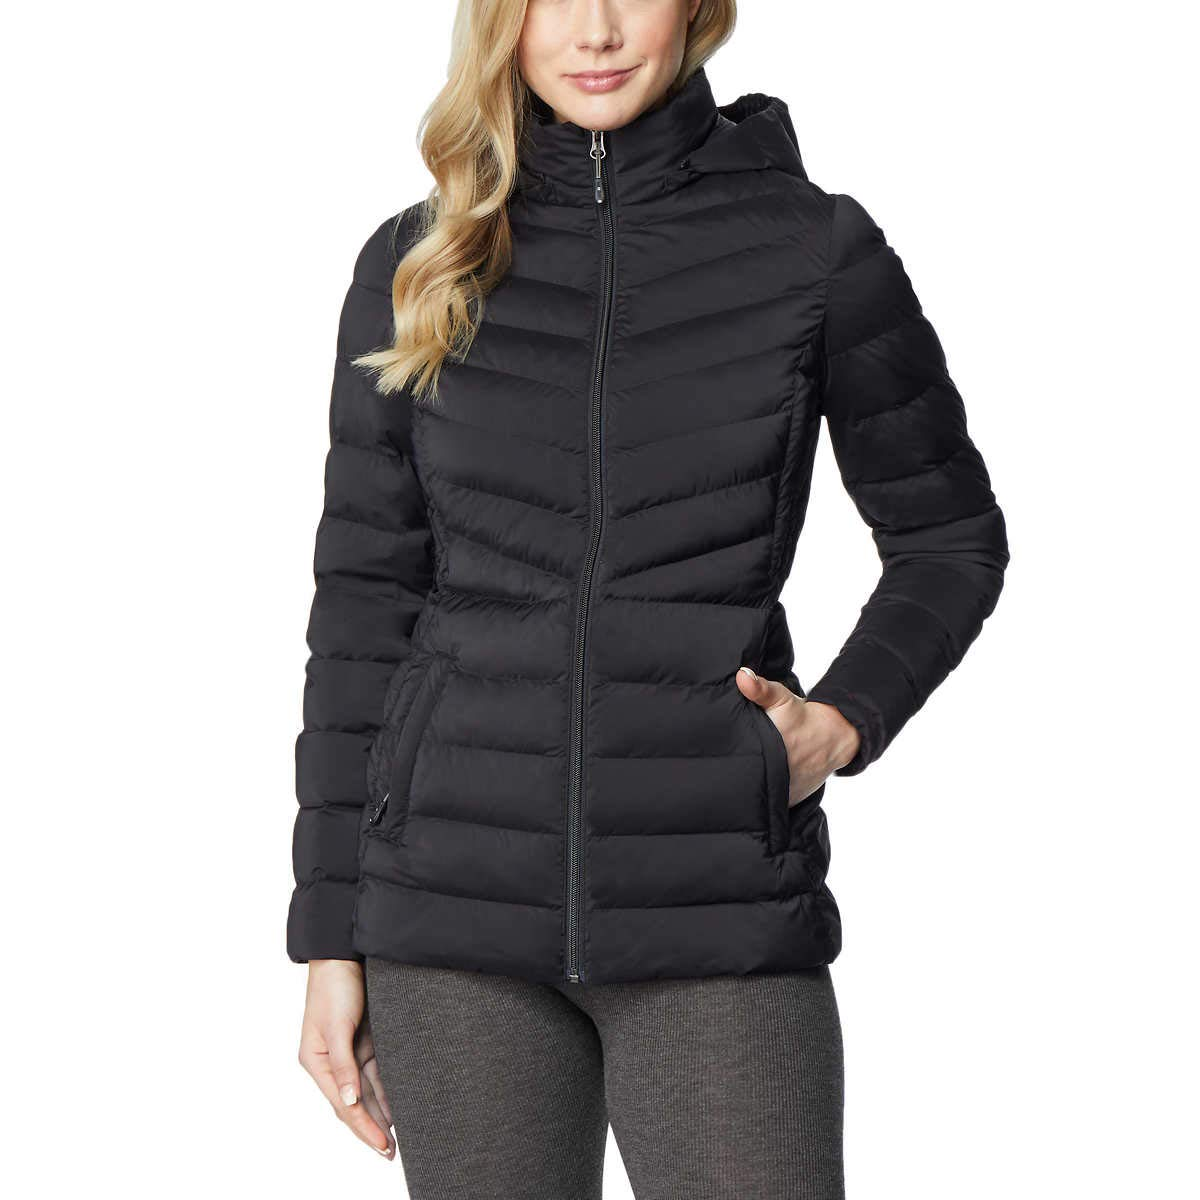 32 DEGREES Women Outerwear, BLACK4, S by 32 DEGREES